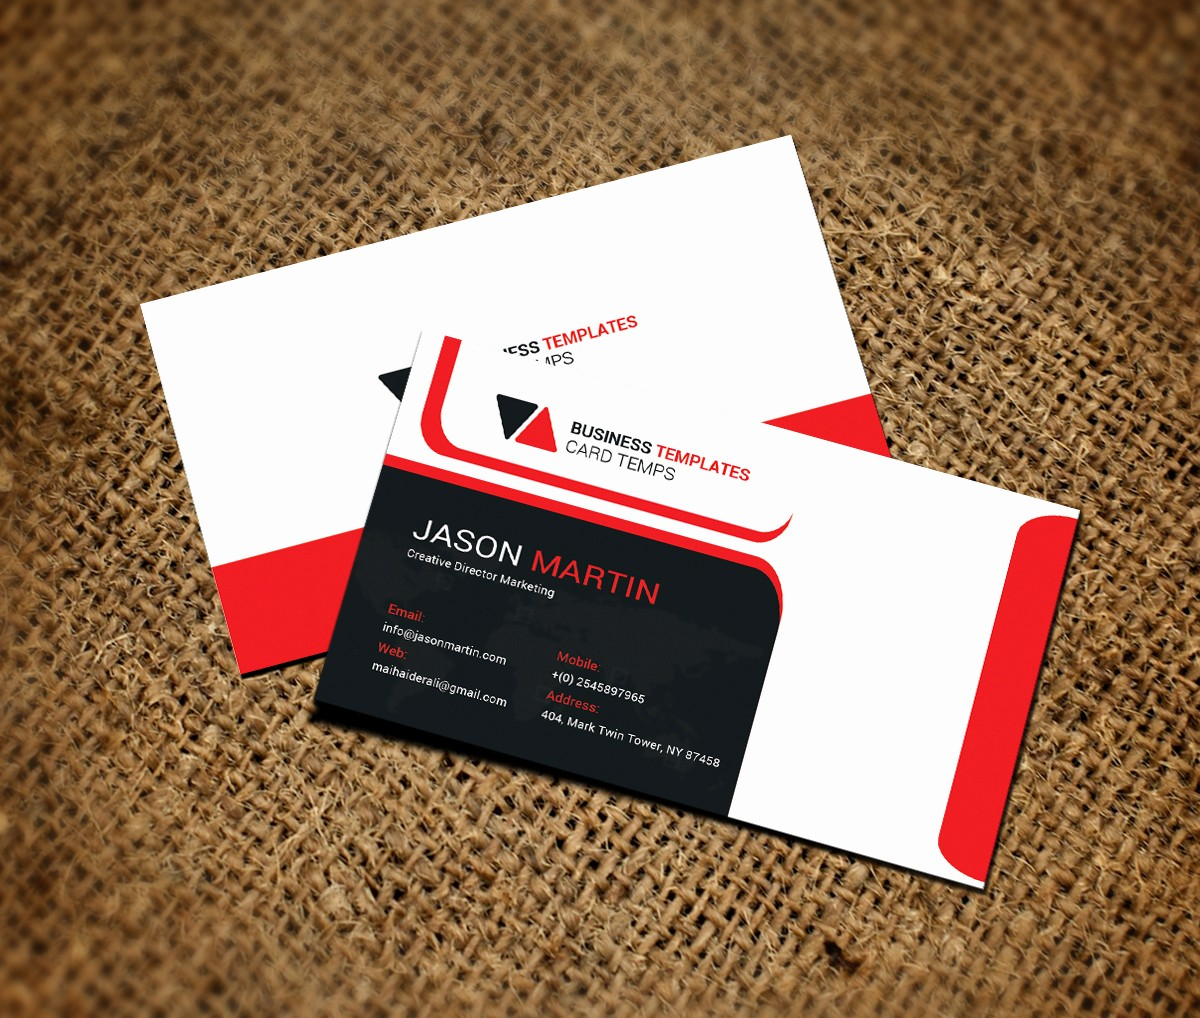 Microsoft Office Business Card Templates Inspirational Fice Business Card Template Business Card Templates On